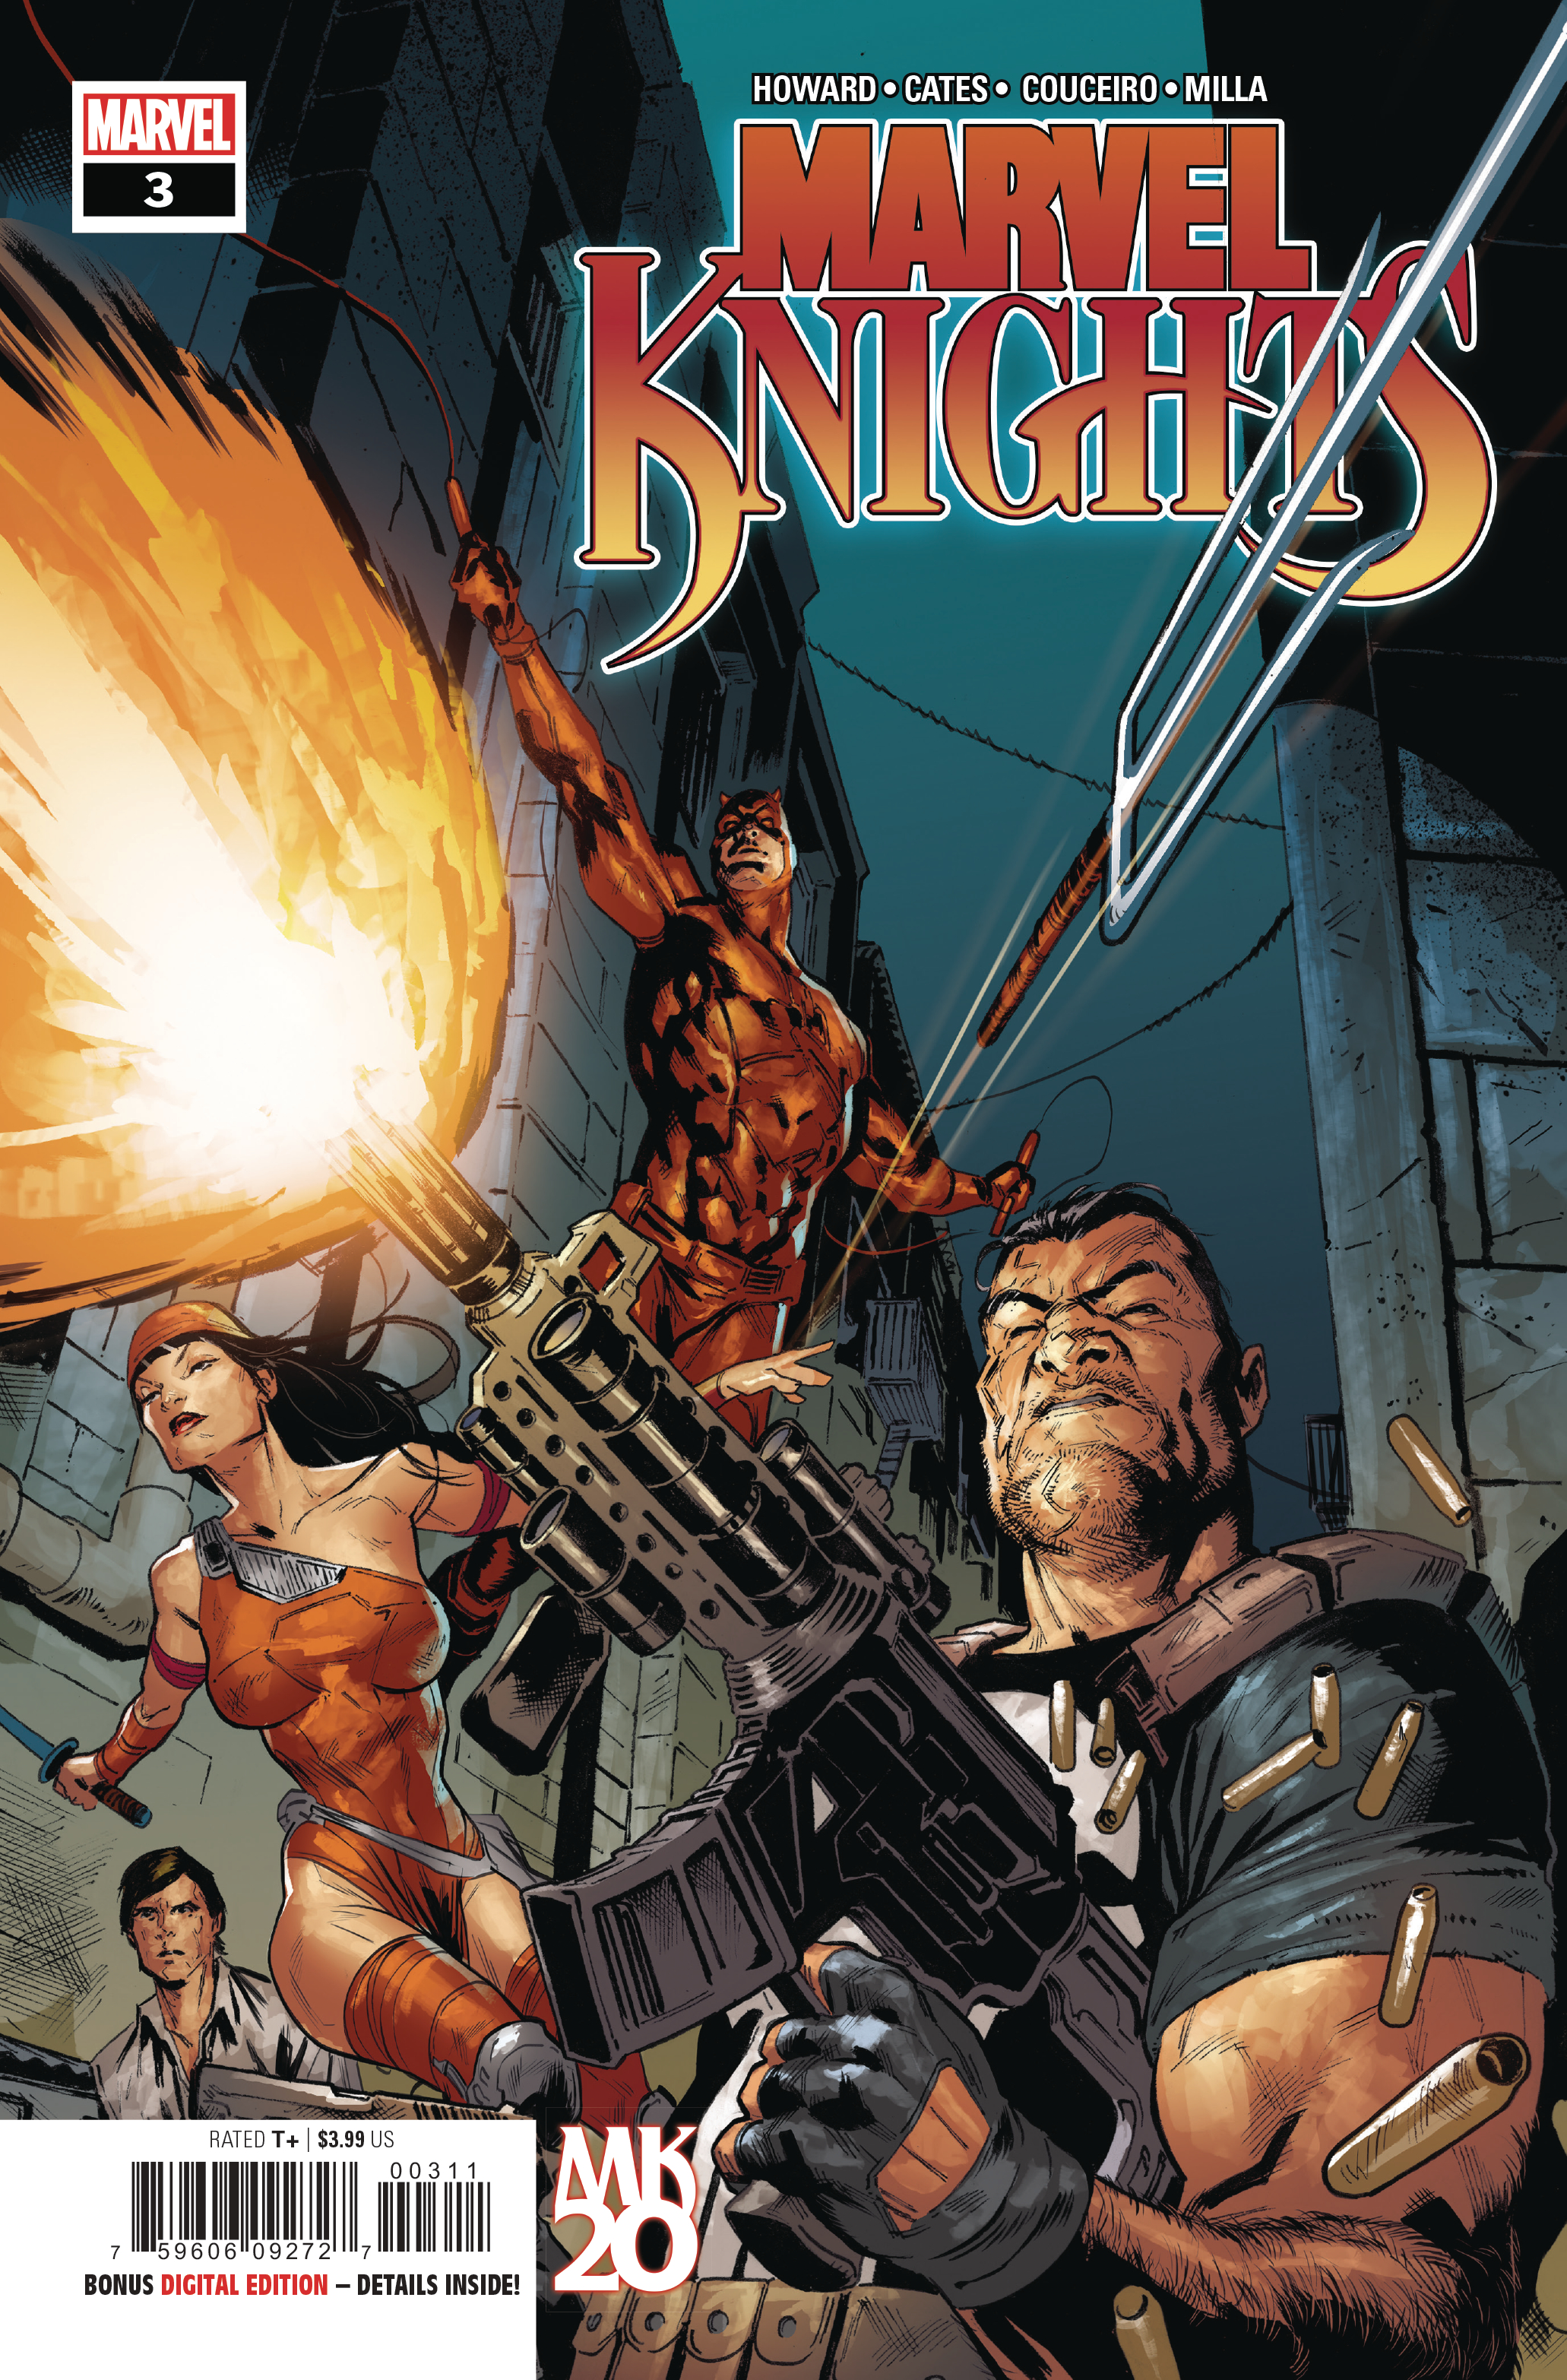 MARVEL KNIGHTS 20TH #3 (OF 6)